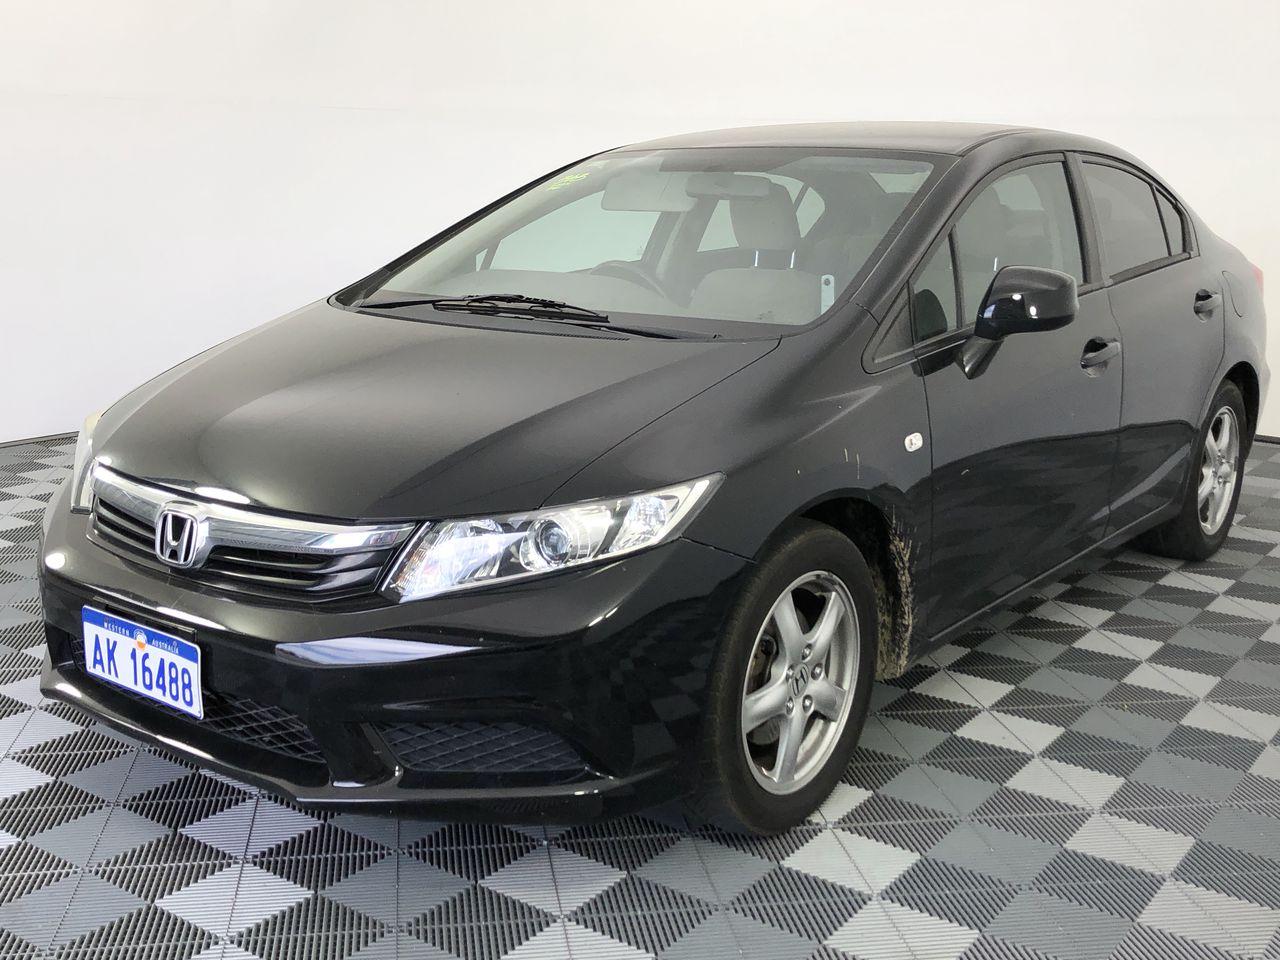 2012 Honda Civic VTI 9TH GEN Automatic Sedan (WOVR- Inspected)